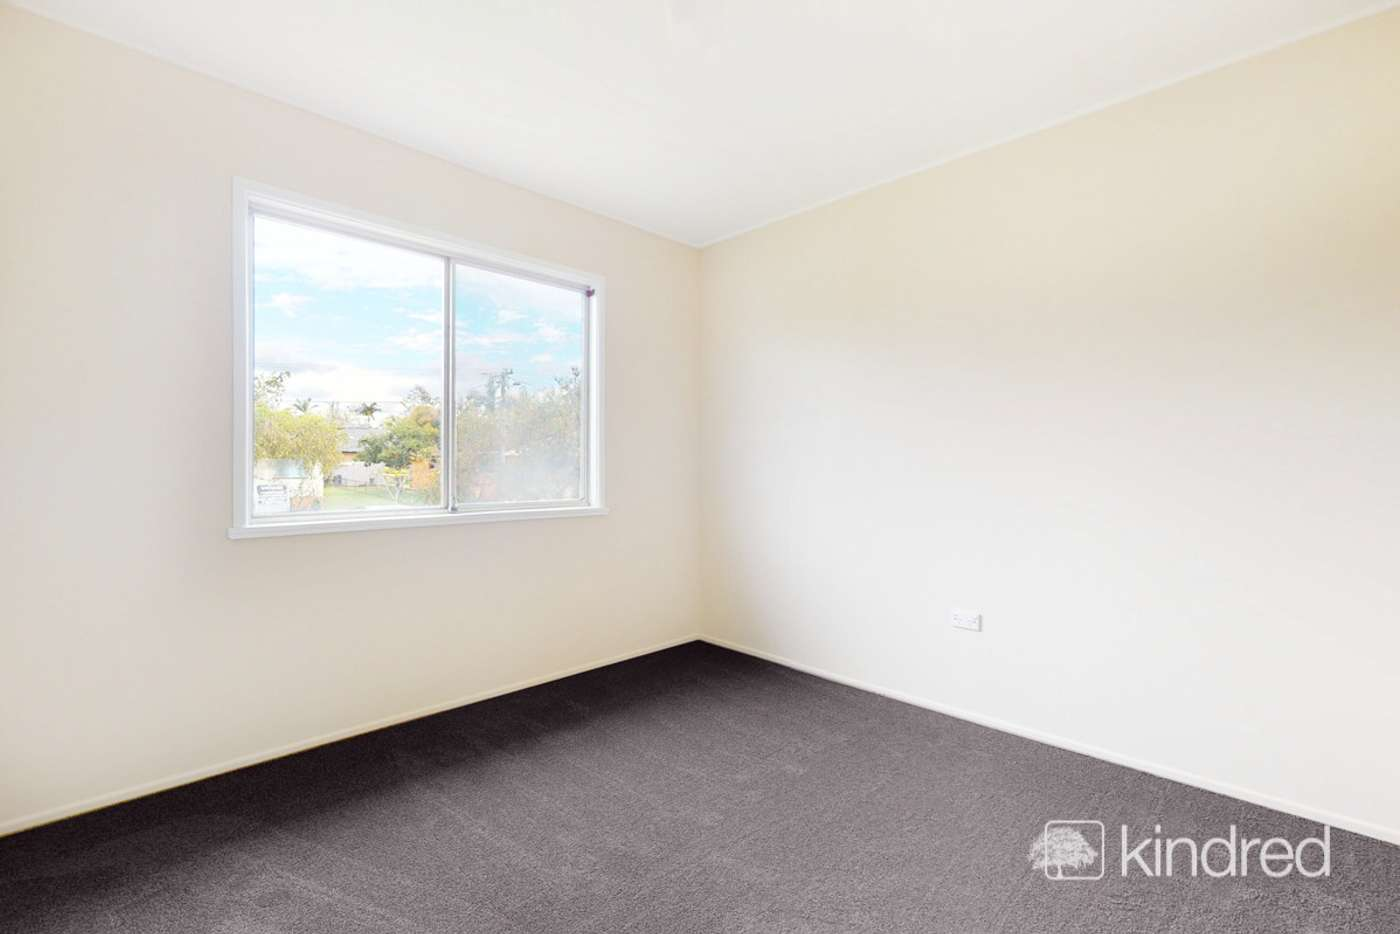 Sixth view of Homely house listing, 15 Kroll Street, Kippa-ring QLD 4021